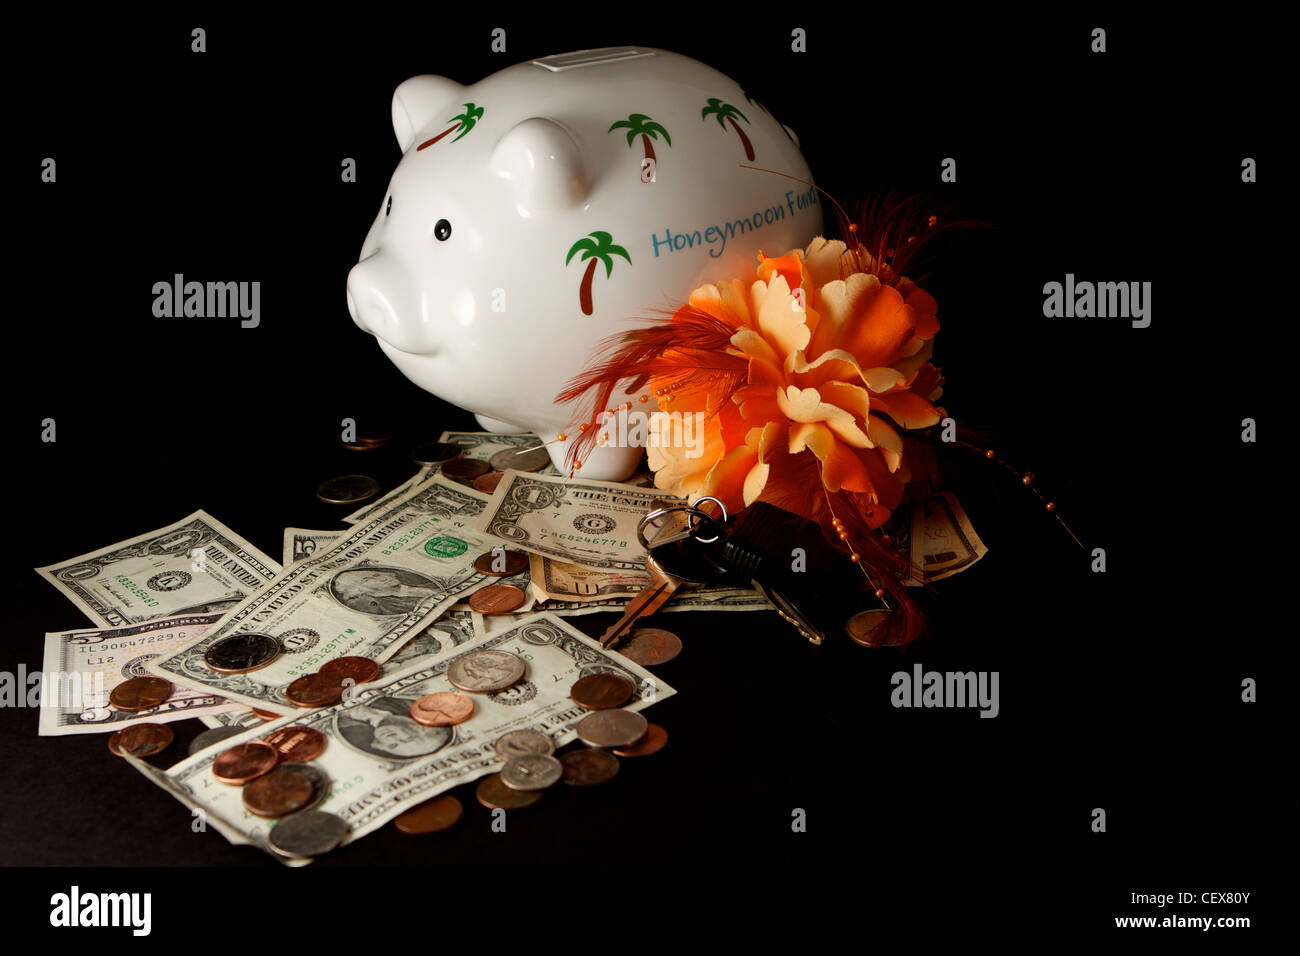 Honeymoon savings Piggy Bank with cash on a black background Stock Photo